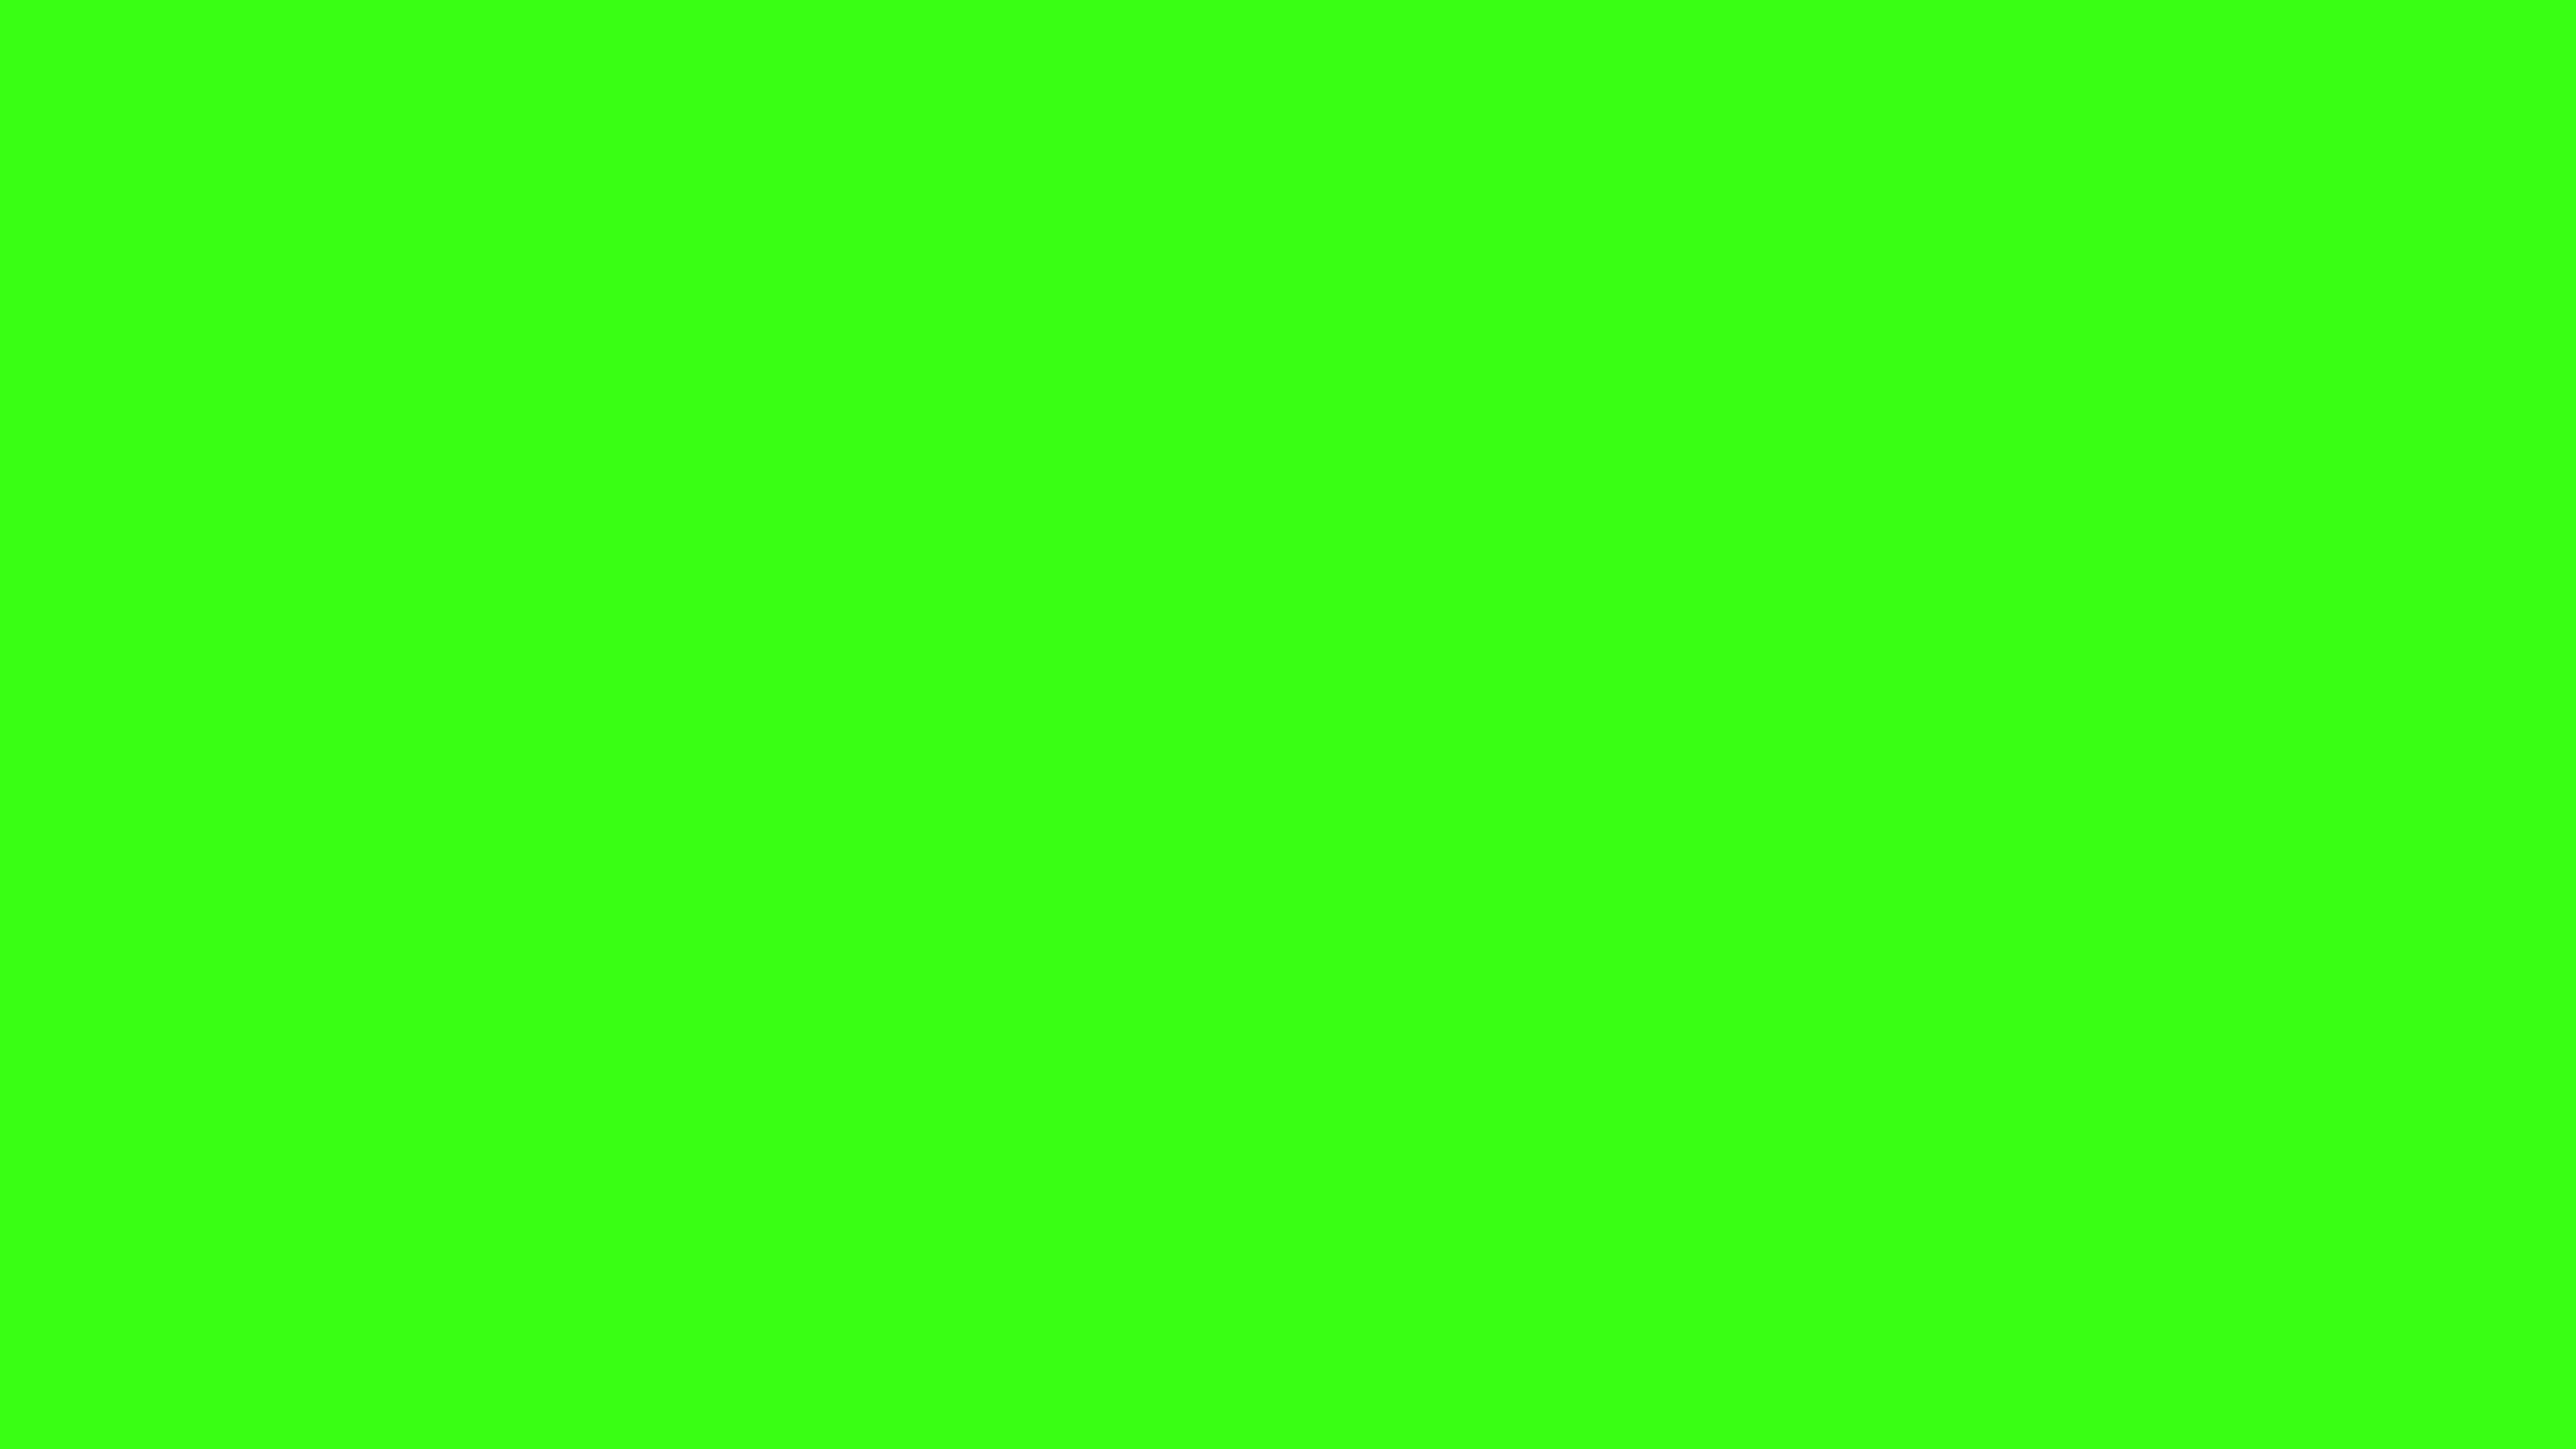 3840x2160  Neon Green Solid Color Background